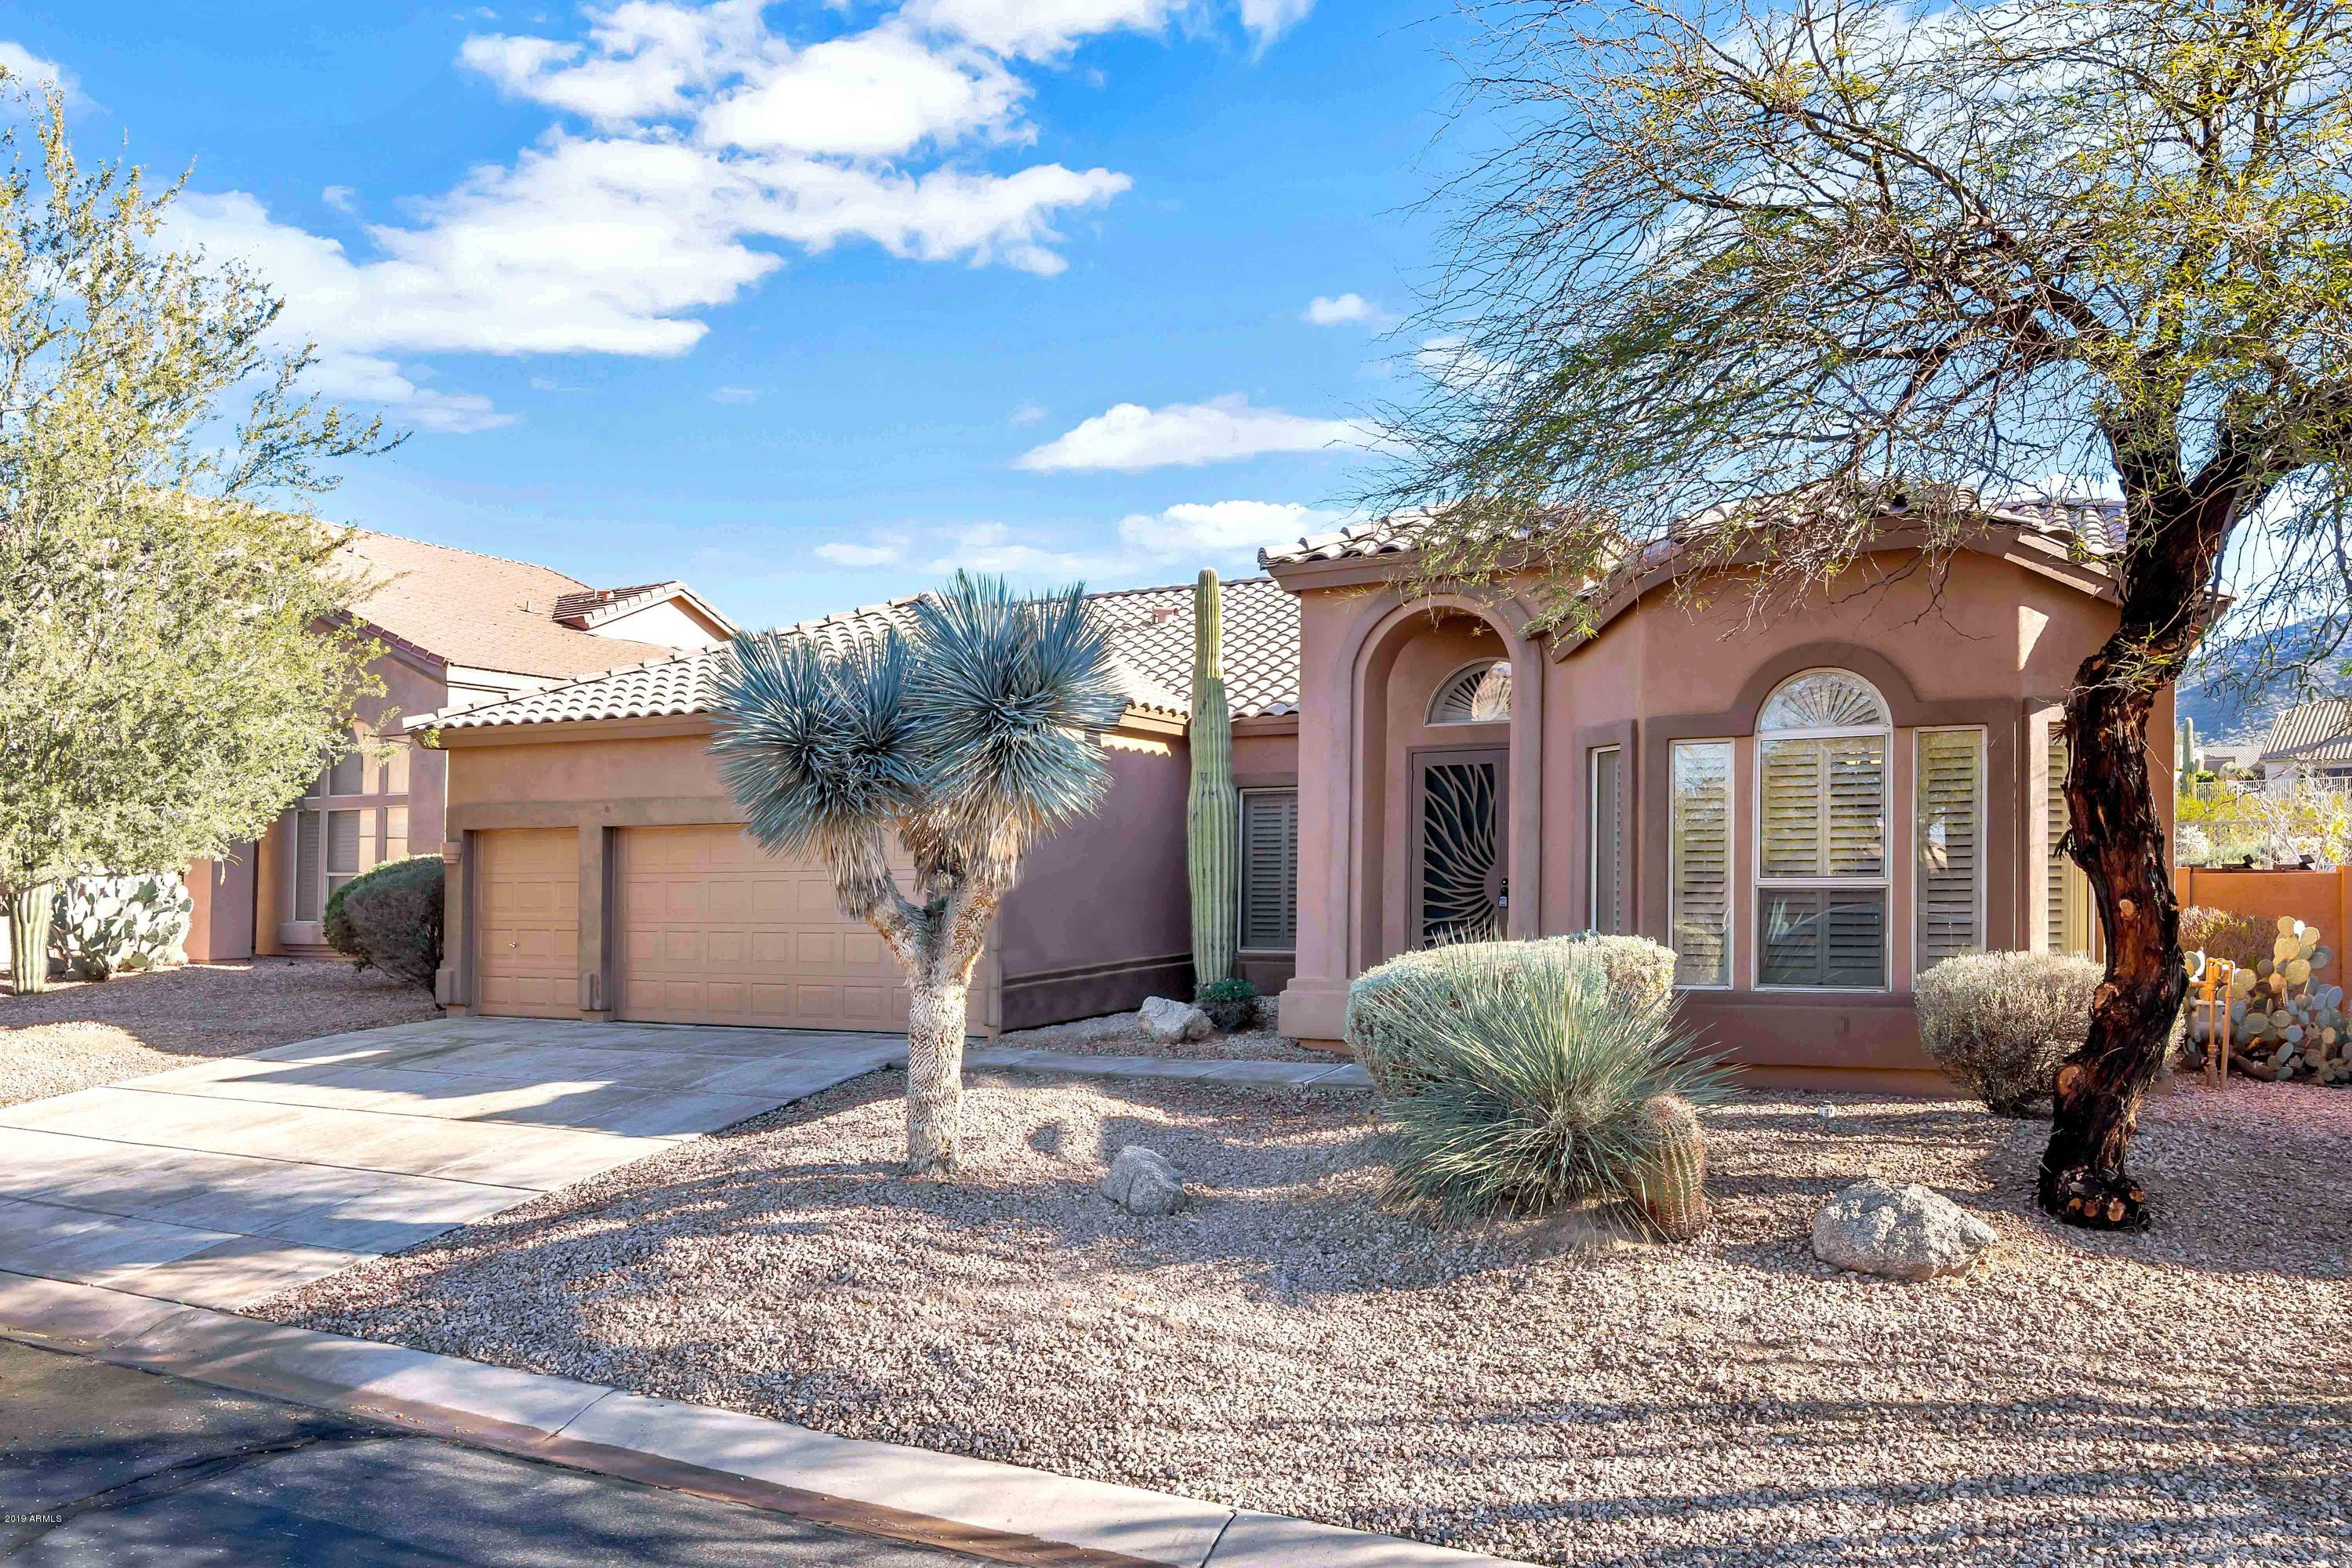 Photo of 3657 N PASEO DEL SOL --, Mesa, AZ 85207